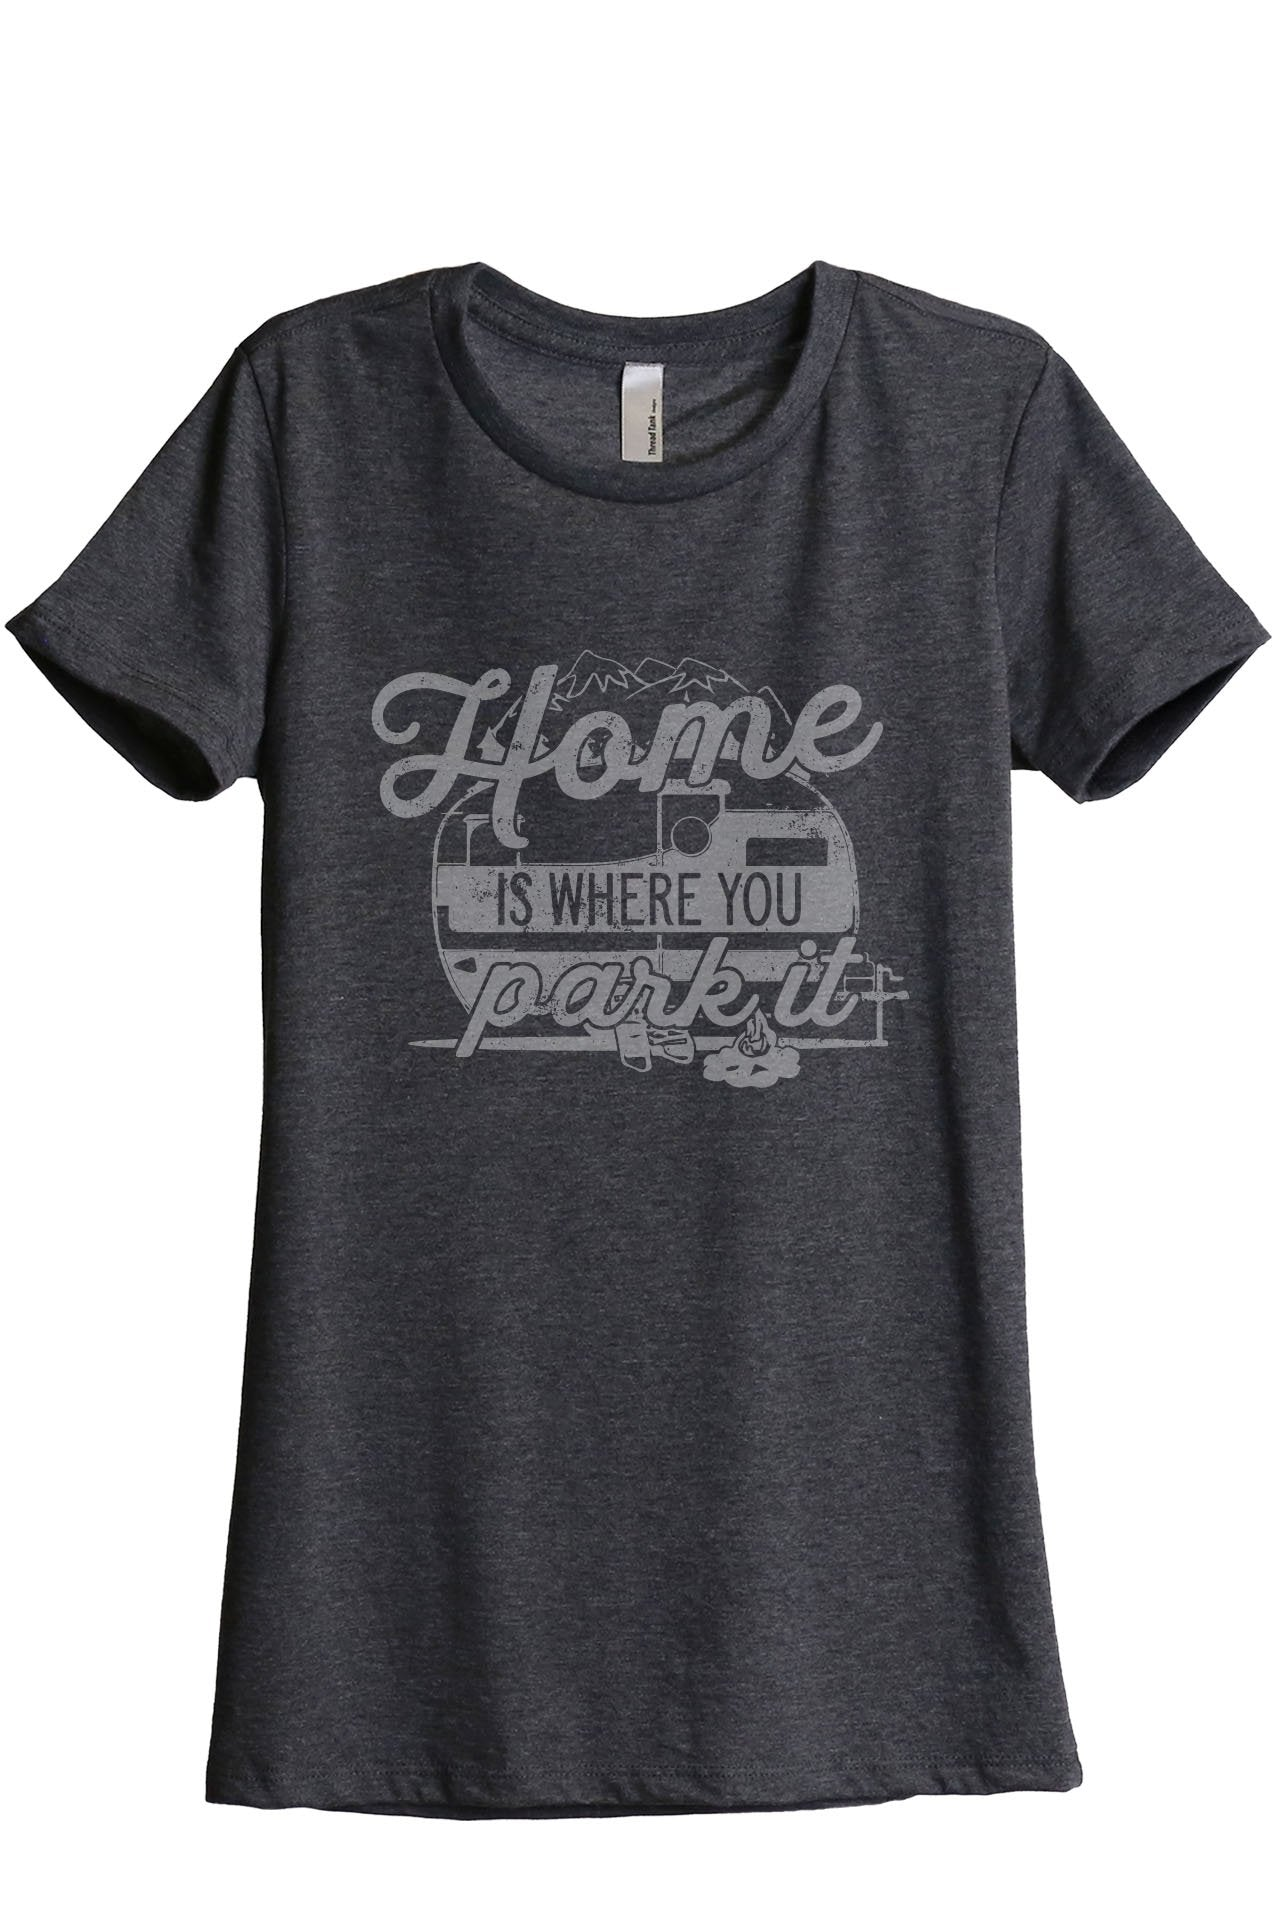 Home Is Where You Park It Women's Relaxed Crewneck T-Shirt Top Tee Charcoal Grey